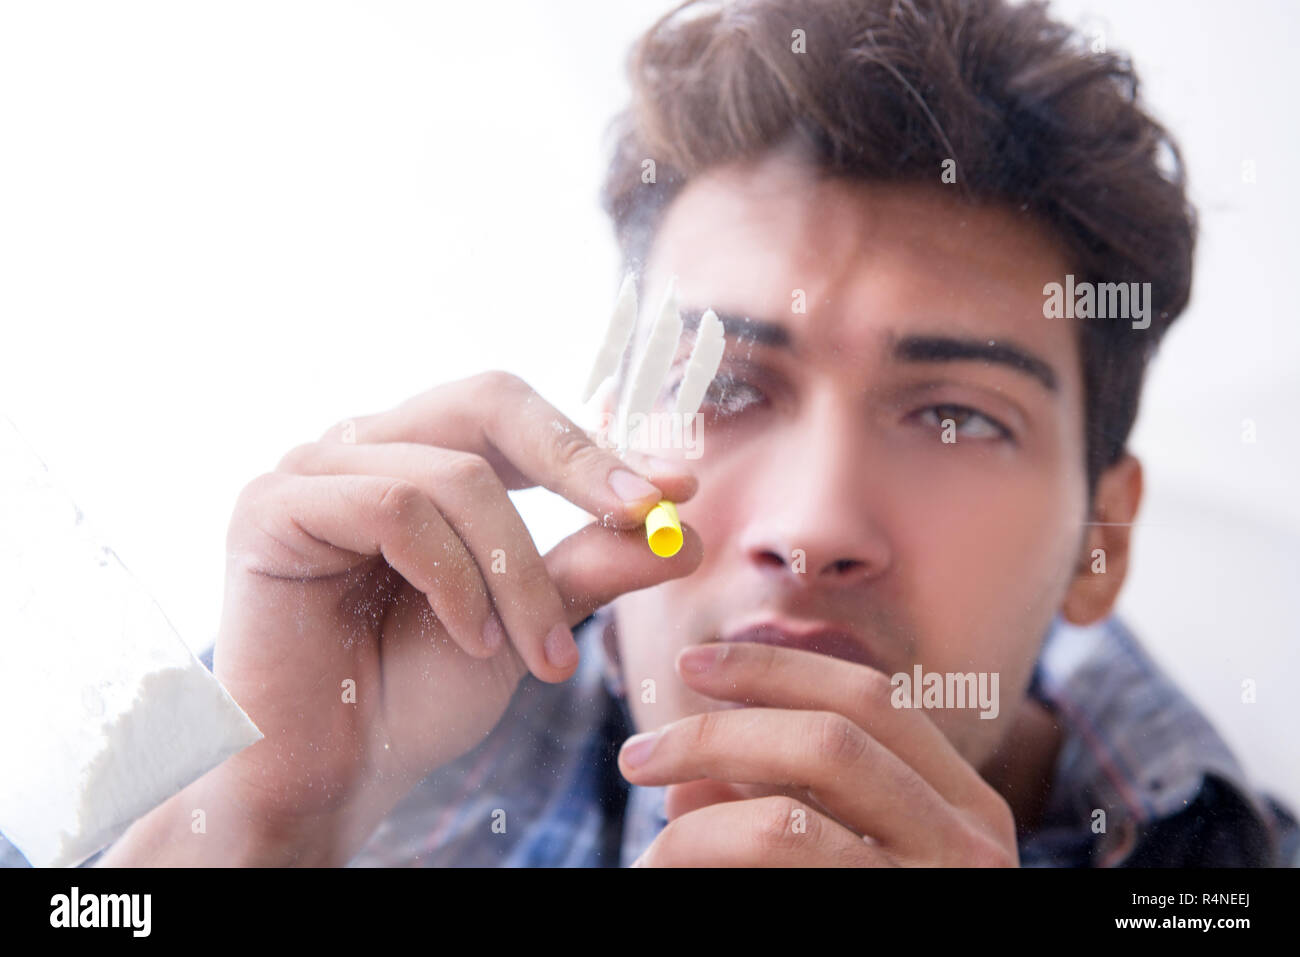 Drug addict sniffing cocaine narcotic Stock Photo: 226665786